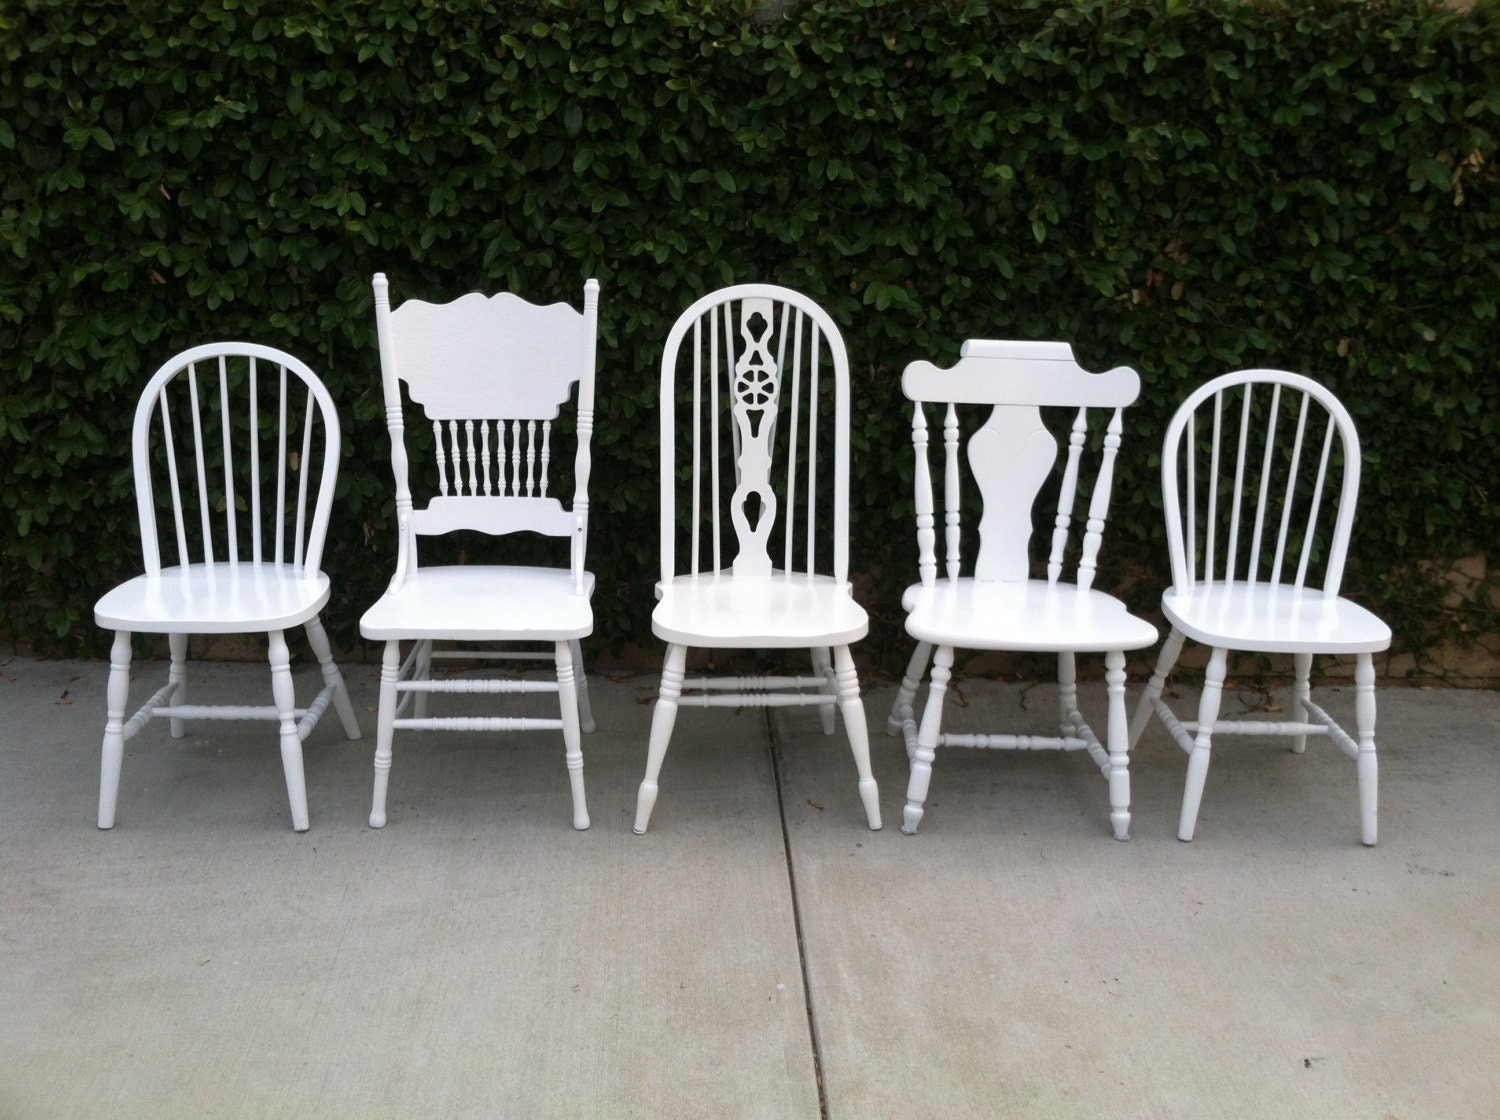 farmhouse kitchen chairs set of 5 dining chairs by thepaintedldy